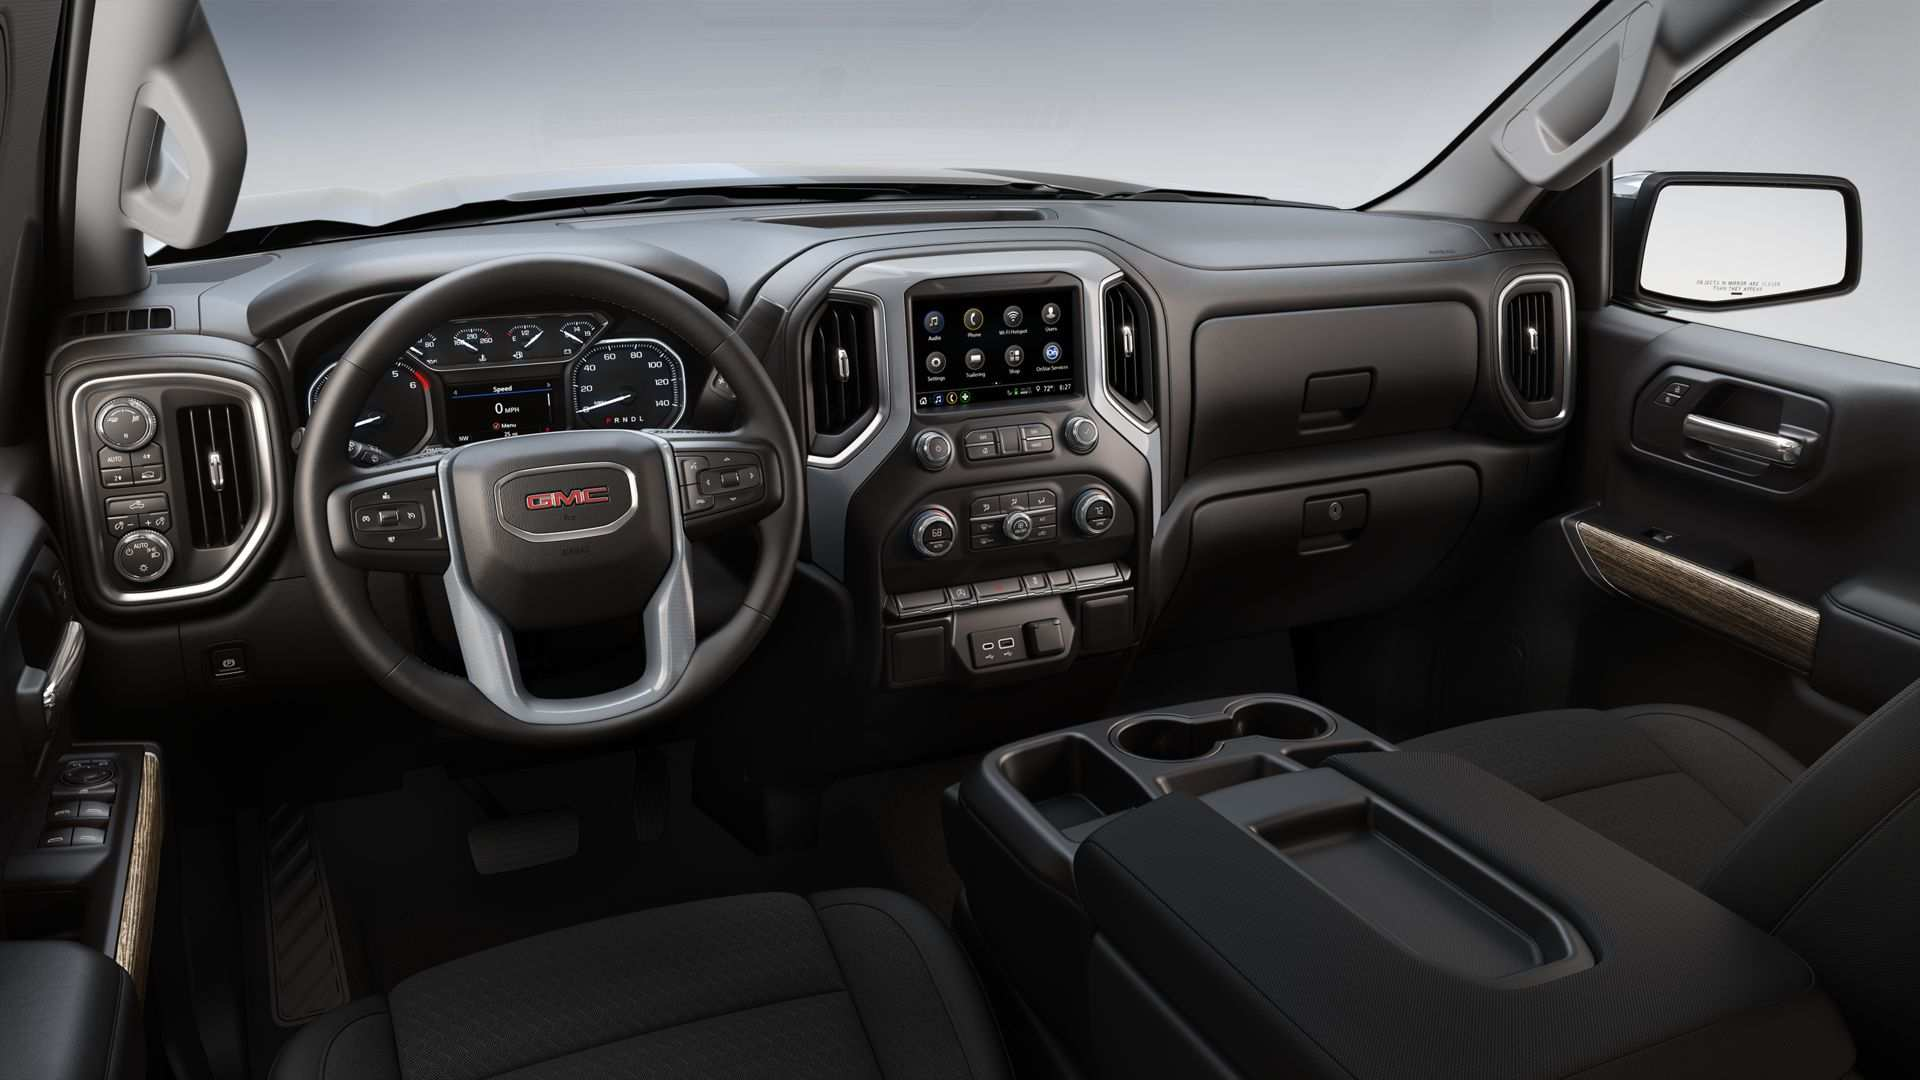 89 All New 2019 Gmc 1500 Interior Pricing